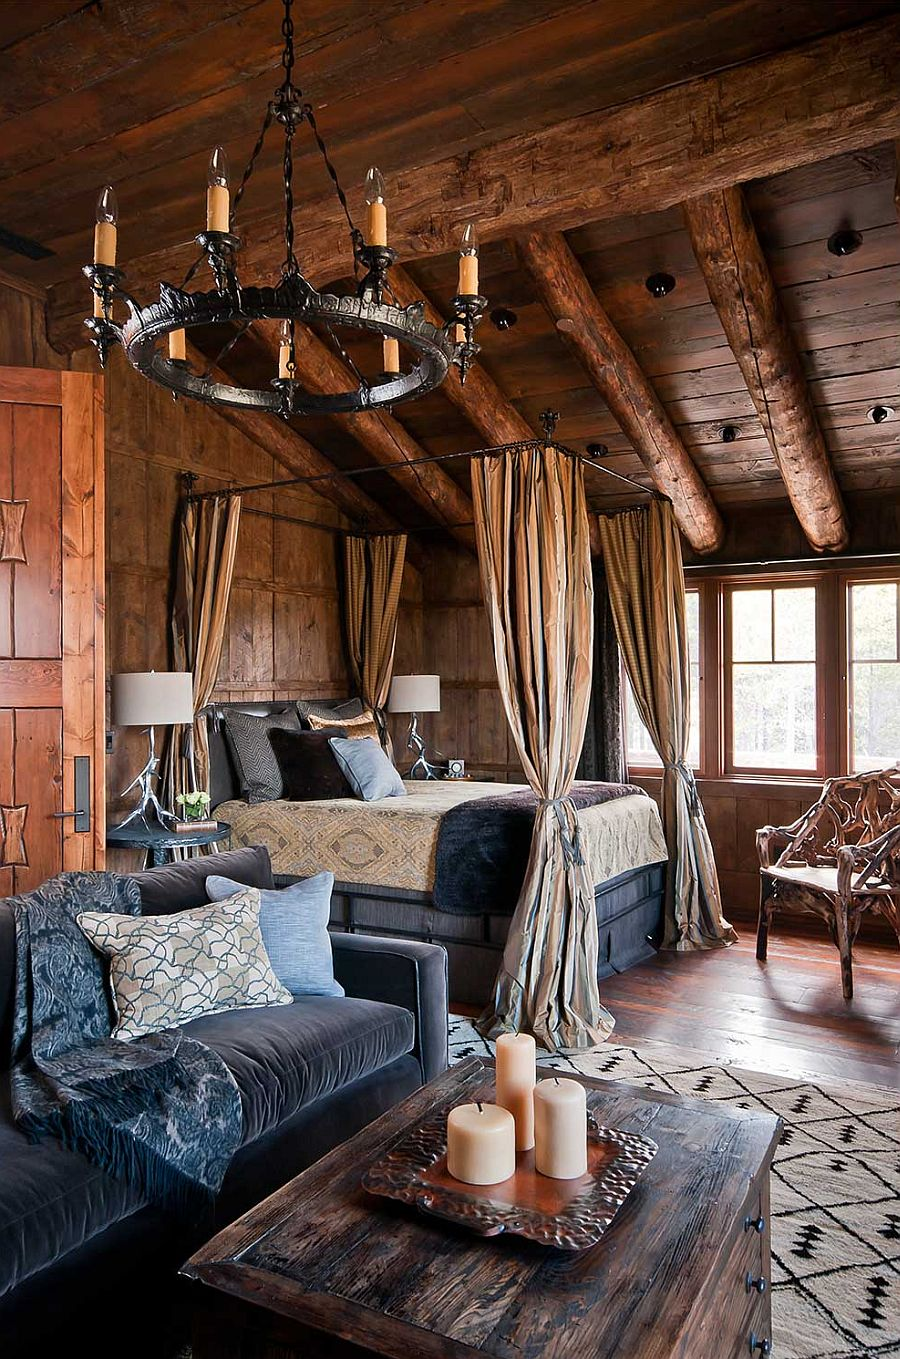 Dancing hearts picture perfect hillside escape in montana - Interior pictures of small log cabins ...